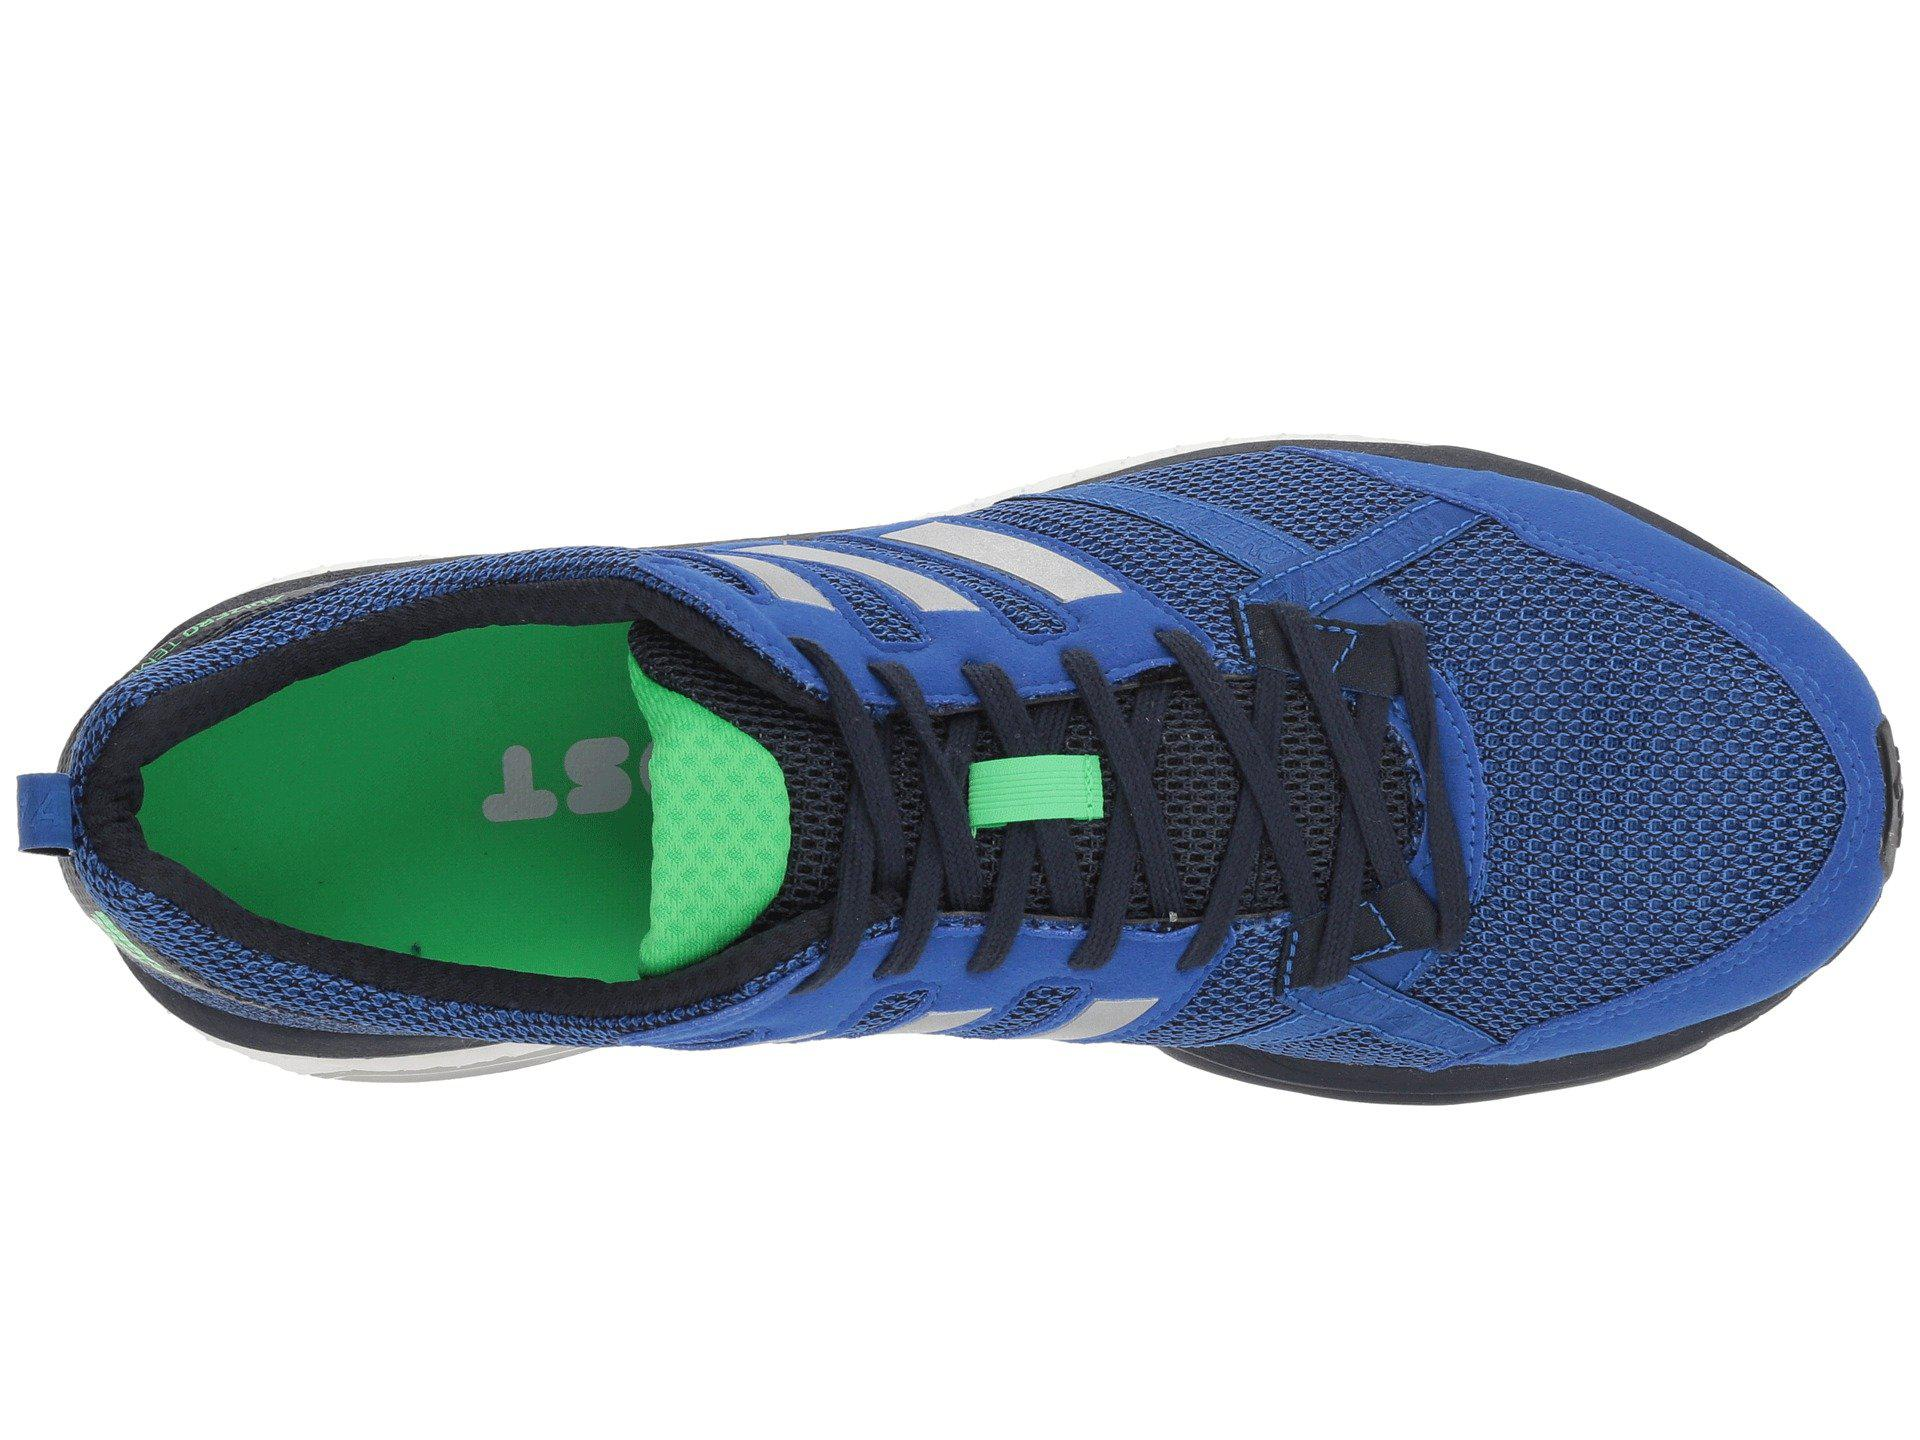 low priced 2de72 15210 Adidas Originals - Blue Adizero Tempo 9 (black hi-res Aqua mystery. View  fullscreen